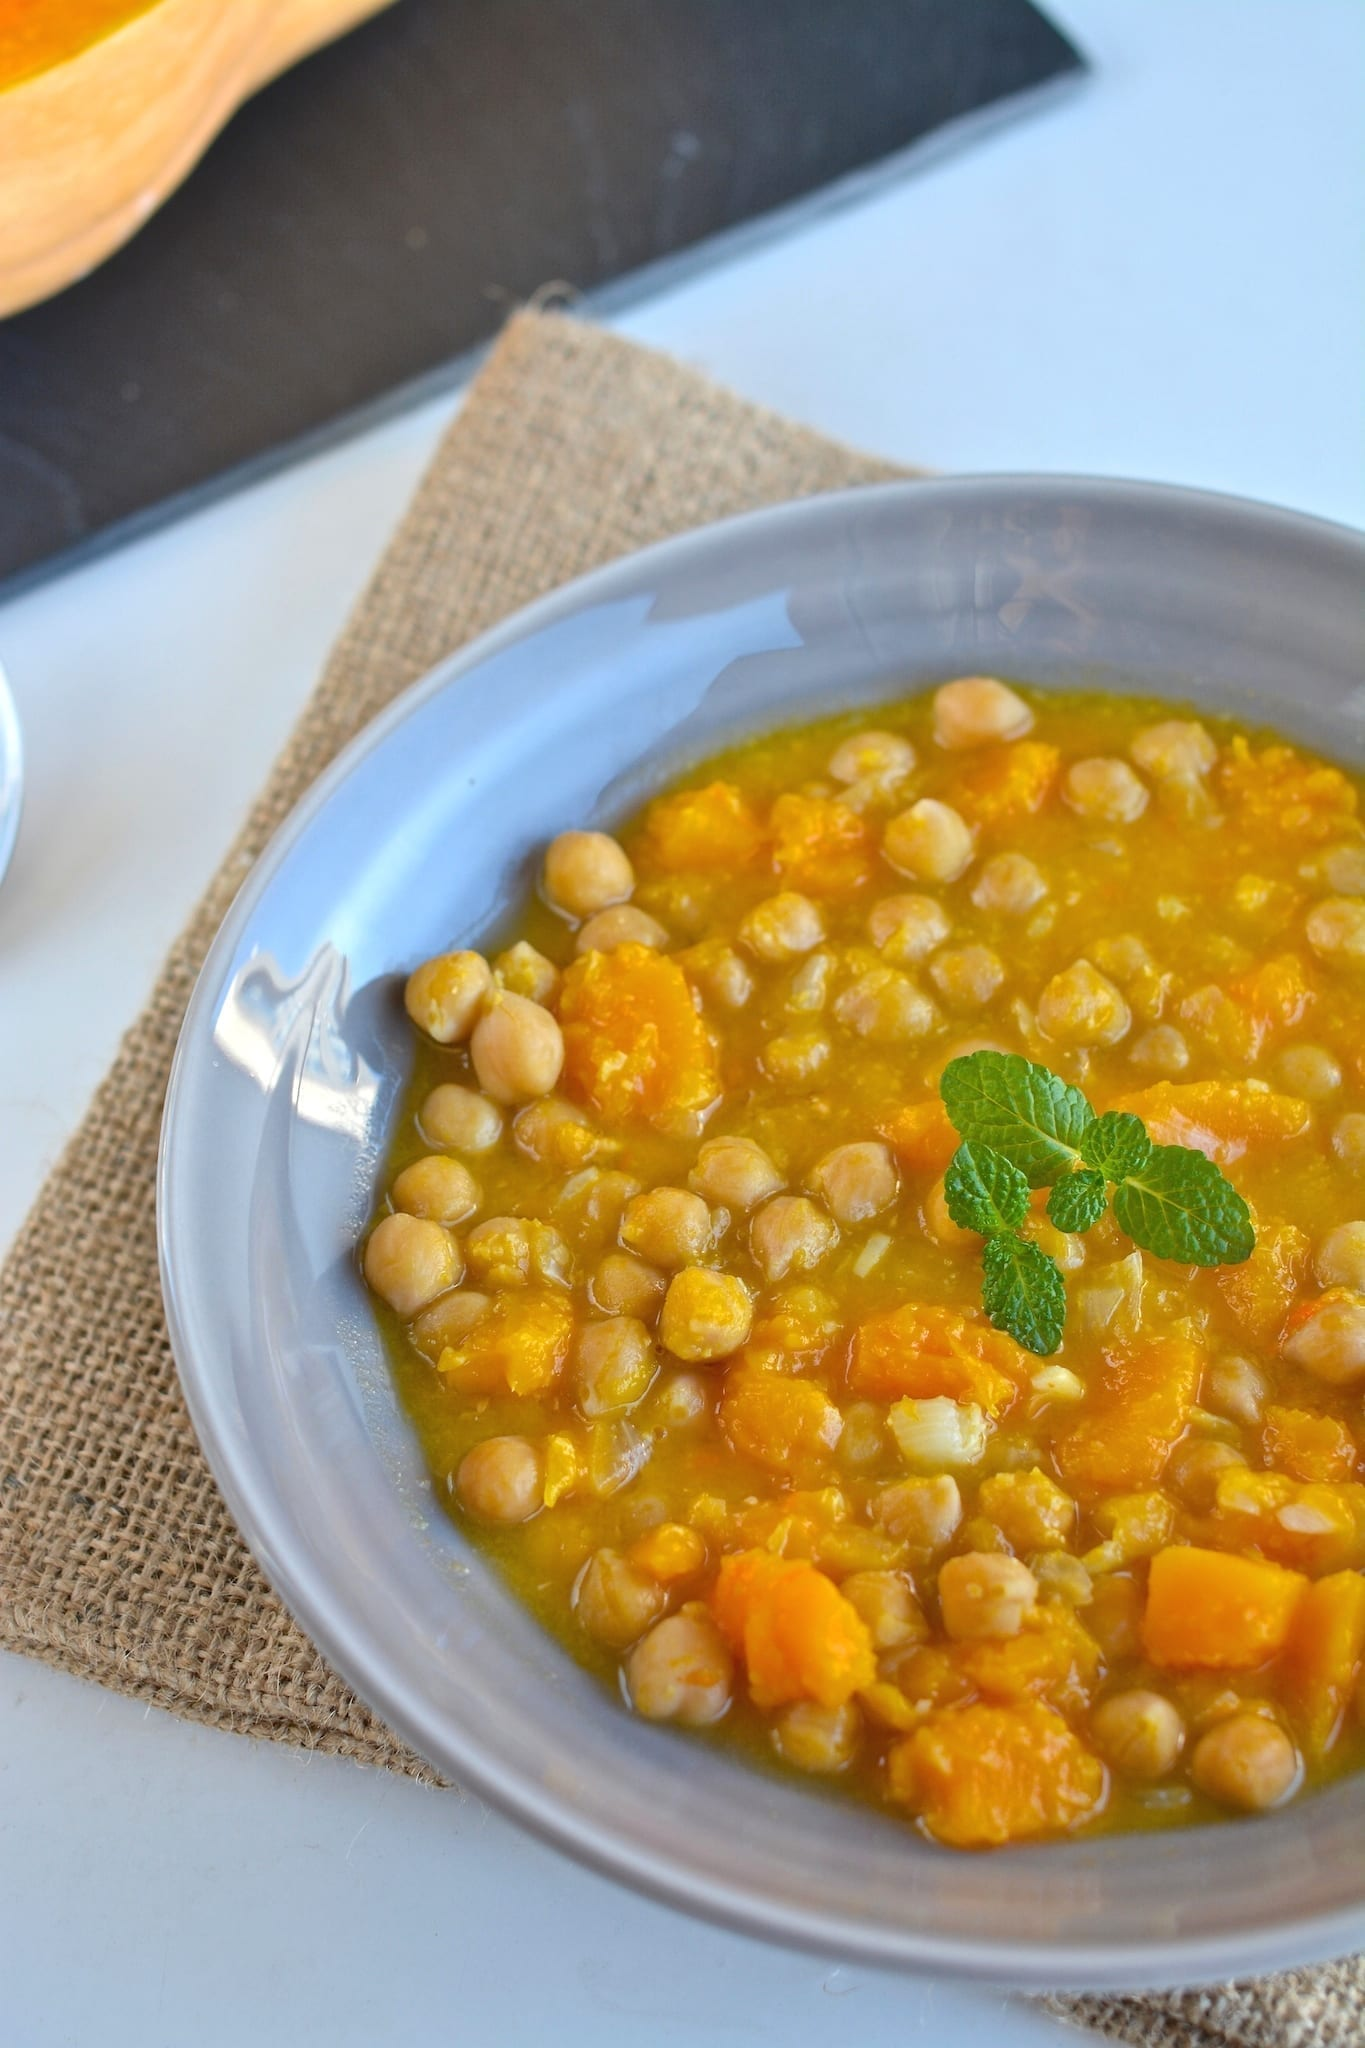 Vegan Squash Or Pumpkin Stew With Chickpeas And Carrots Recipe ...